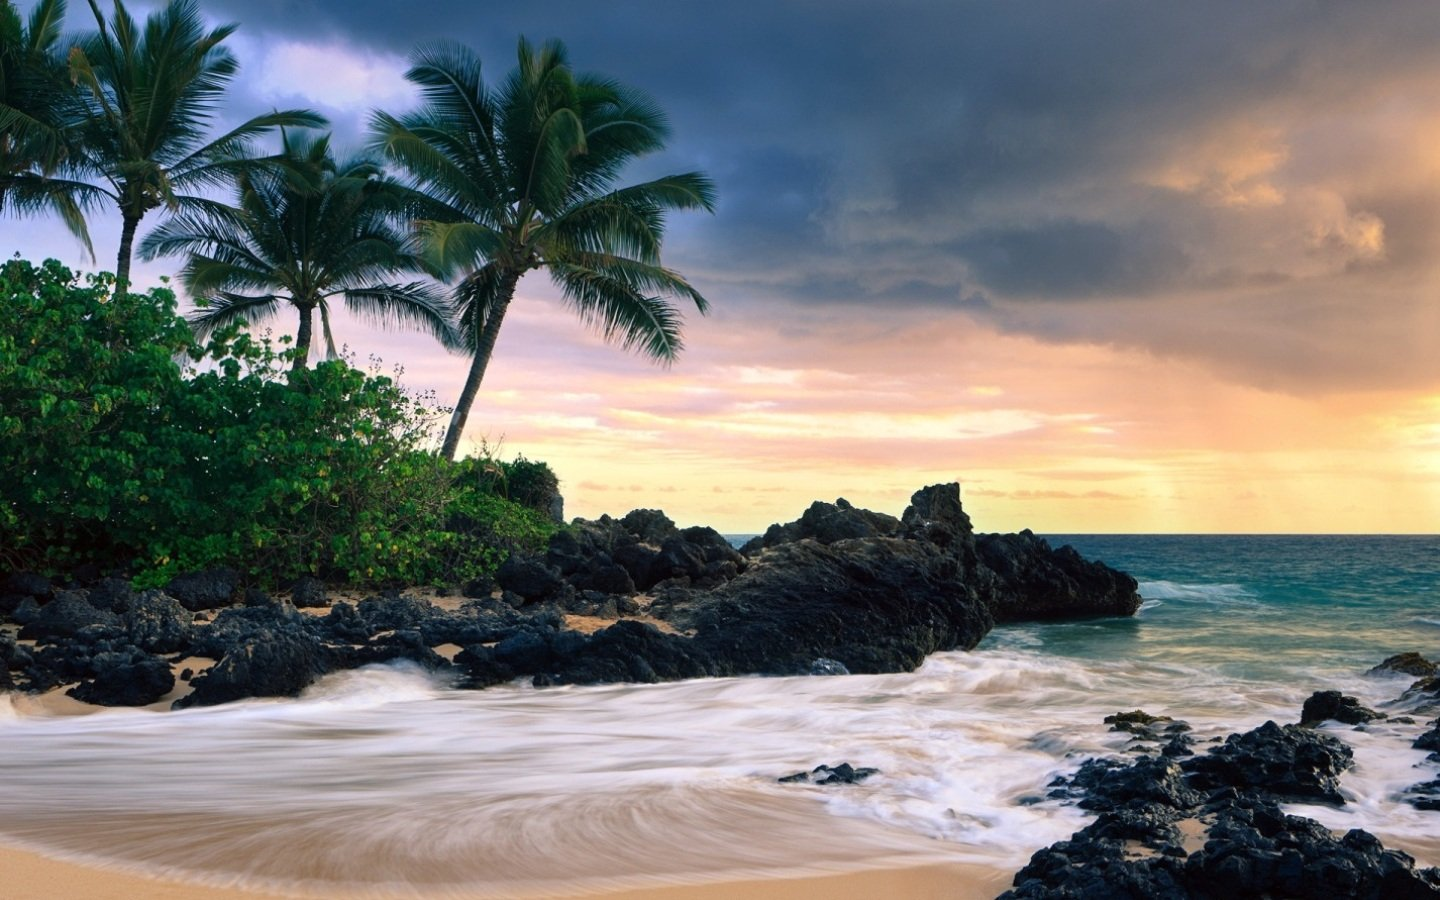 Beach Desktop Backgrounds for Windows 7 6 1440x900